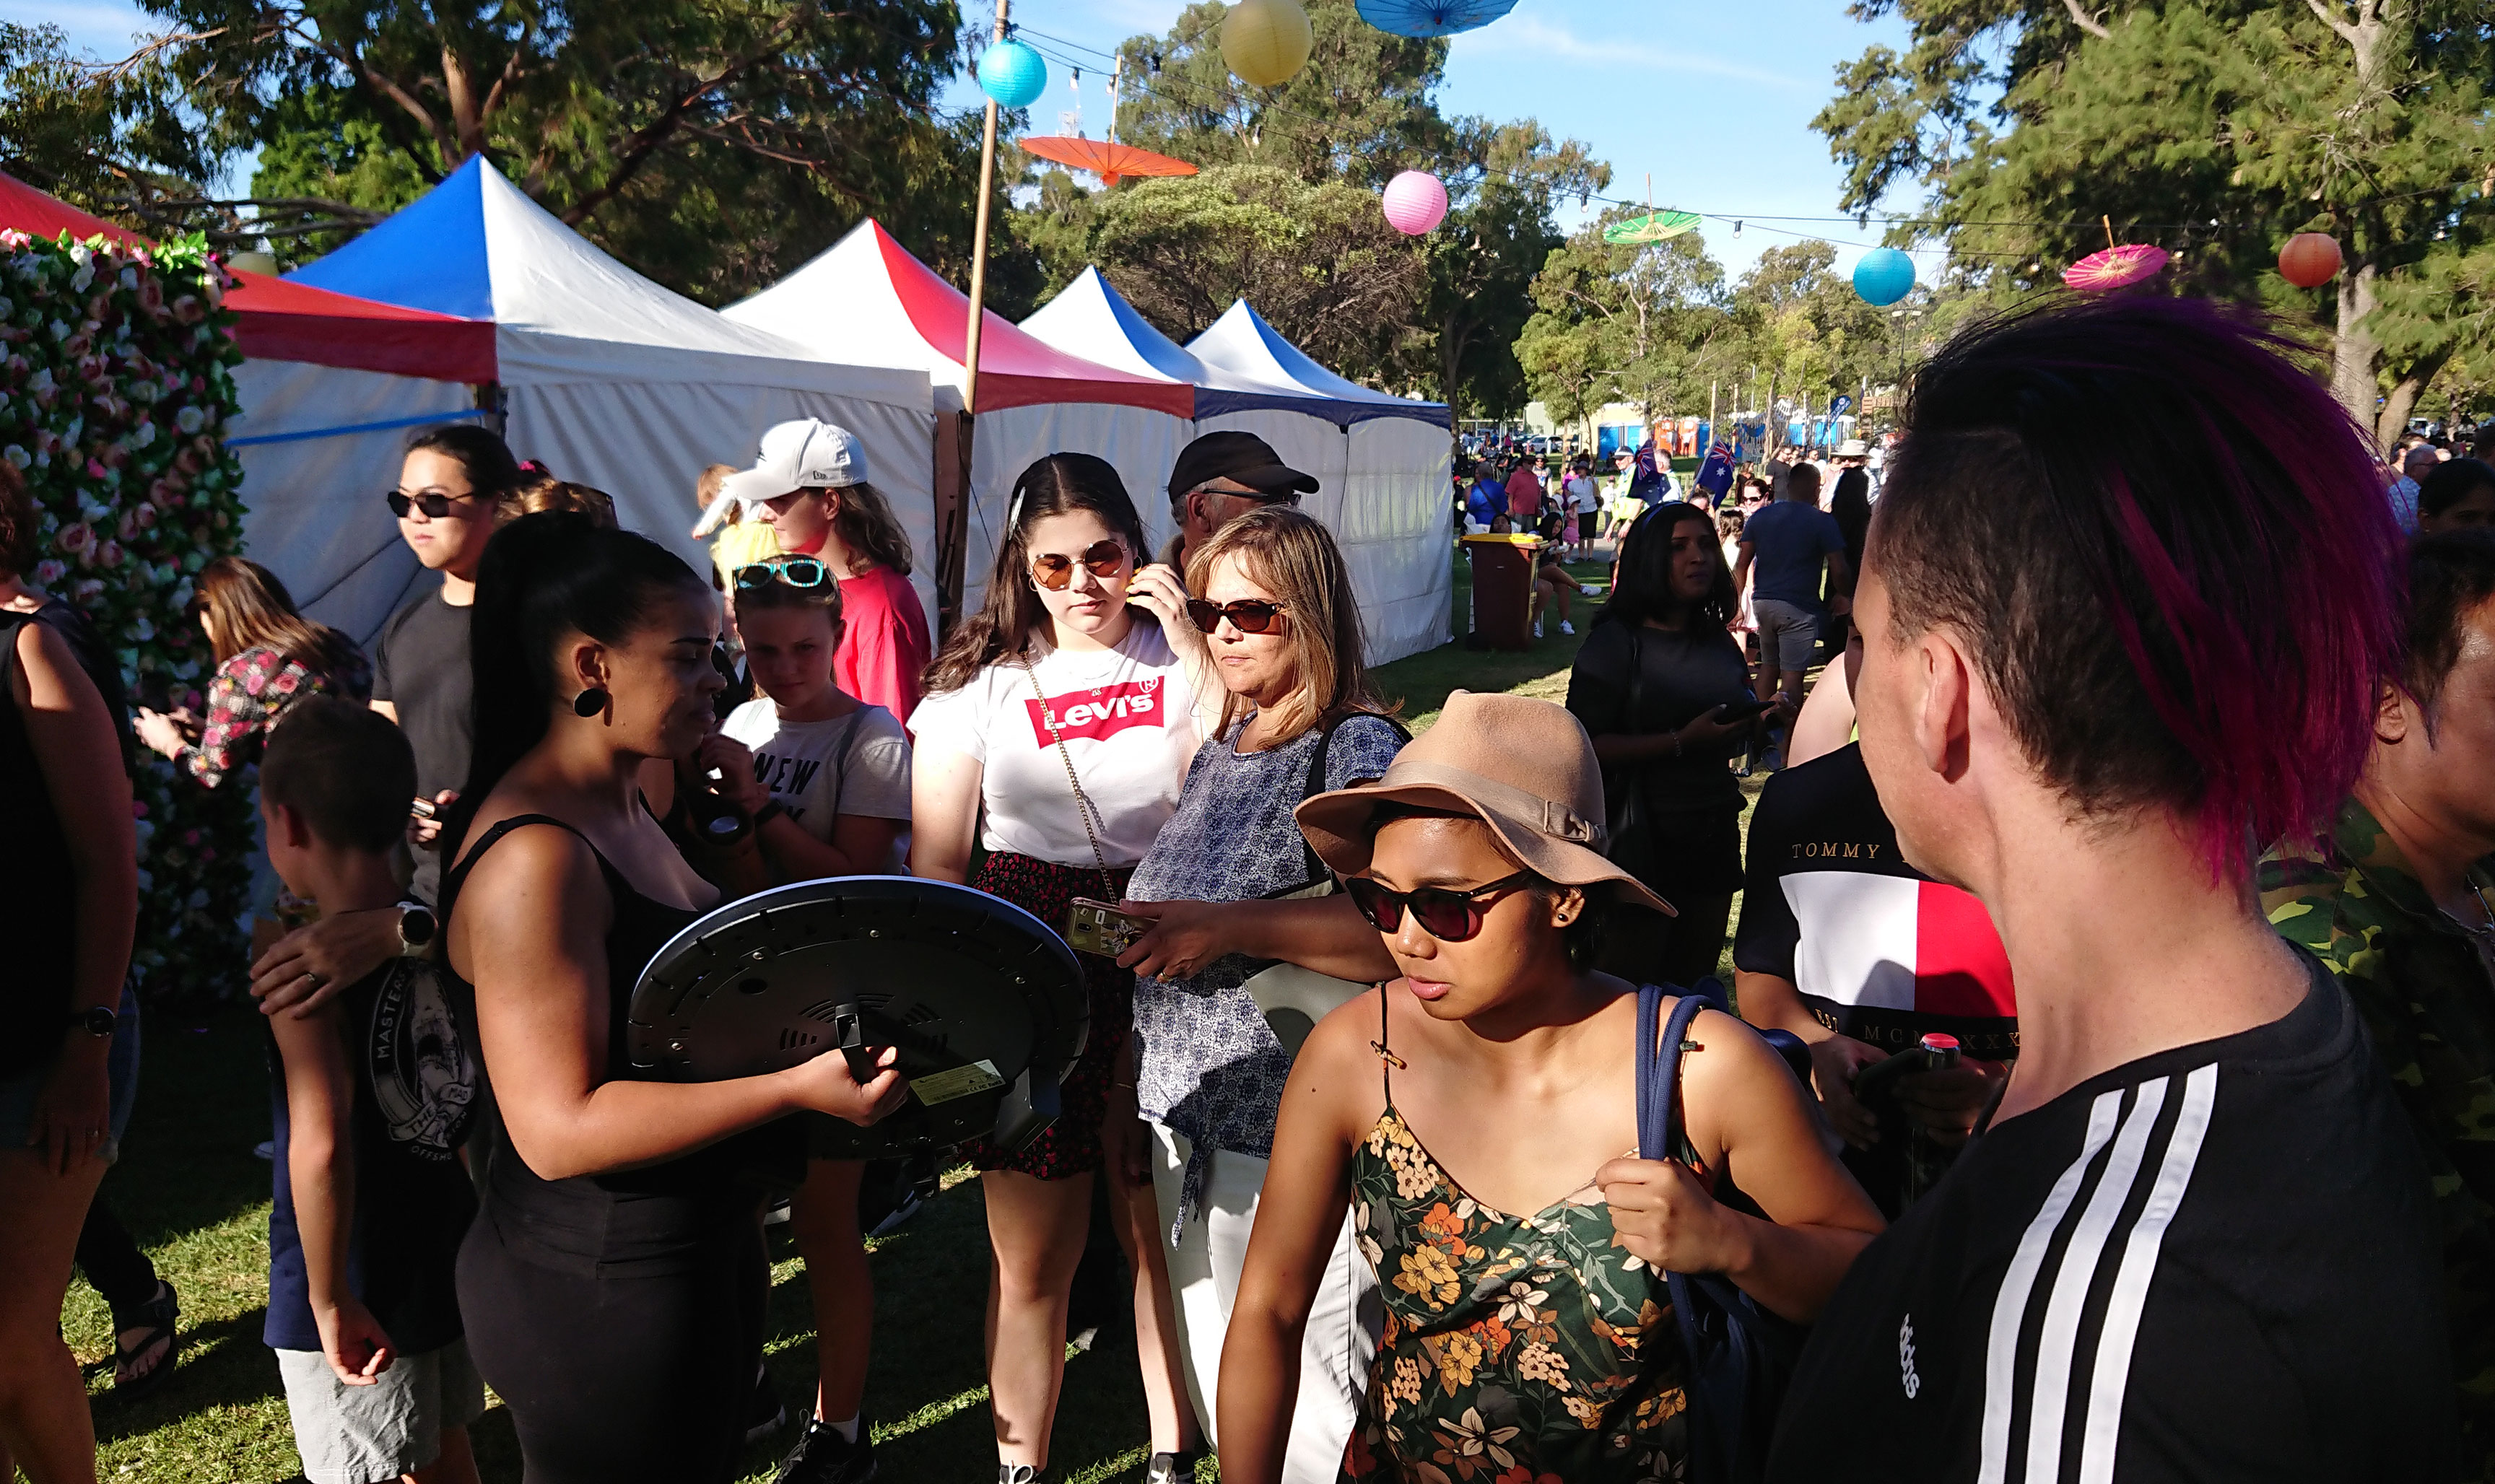 Roaming Photo Booth at Wanneroo Festival